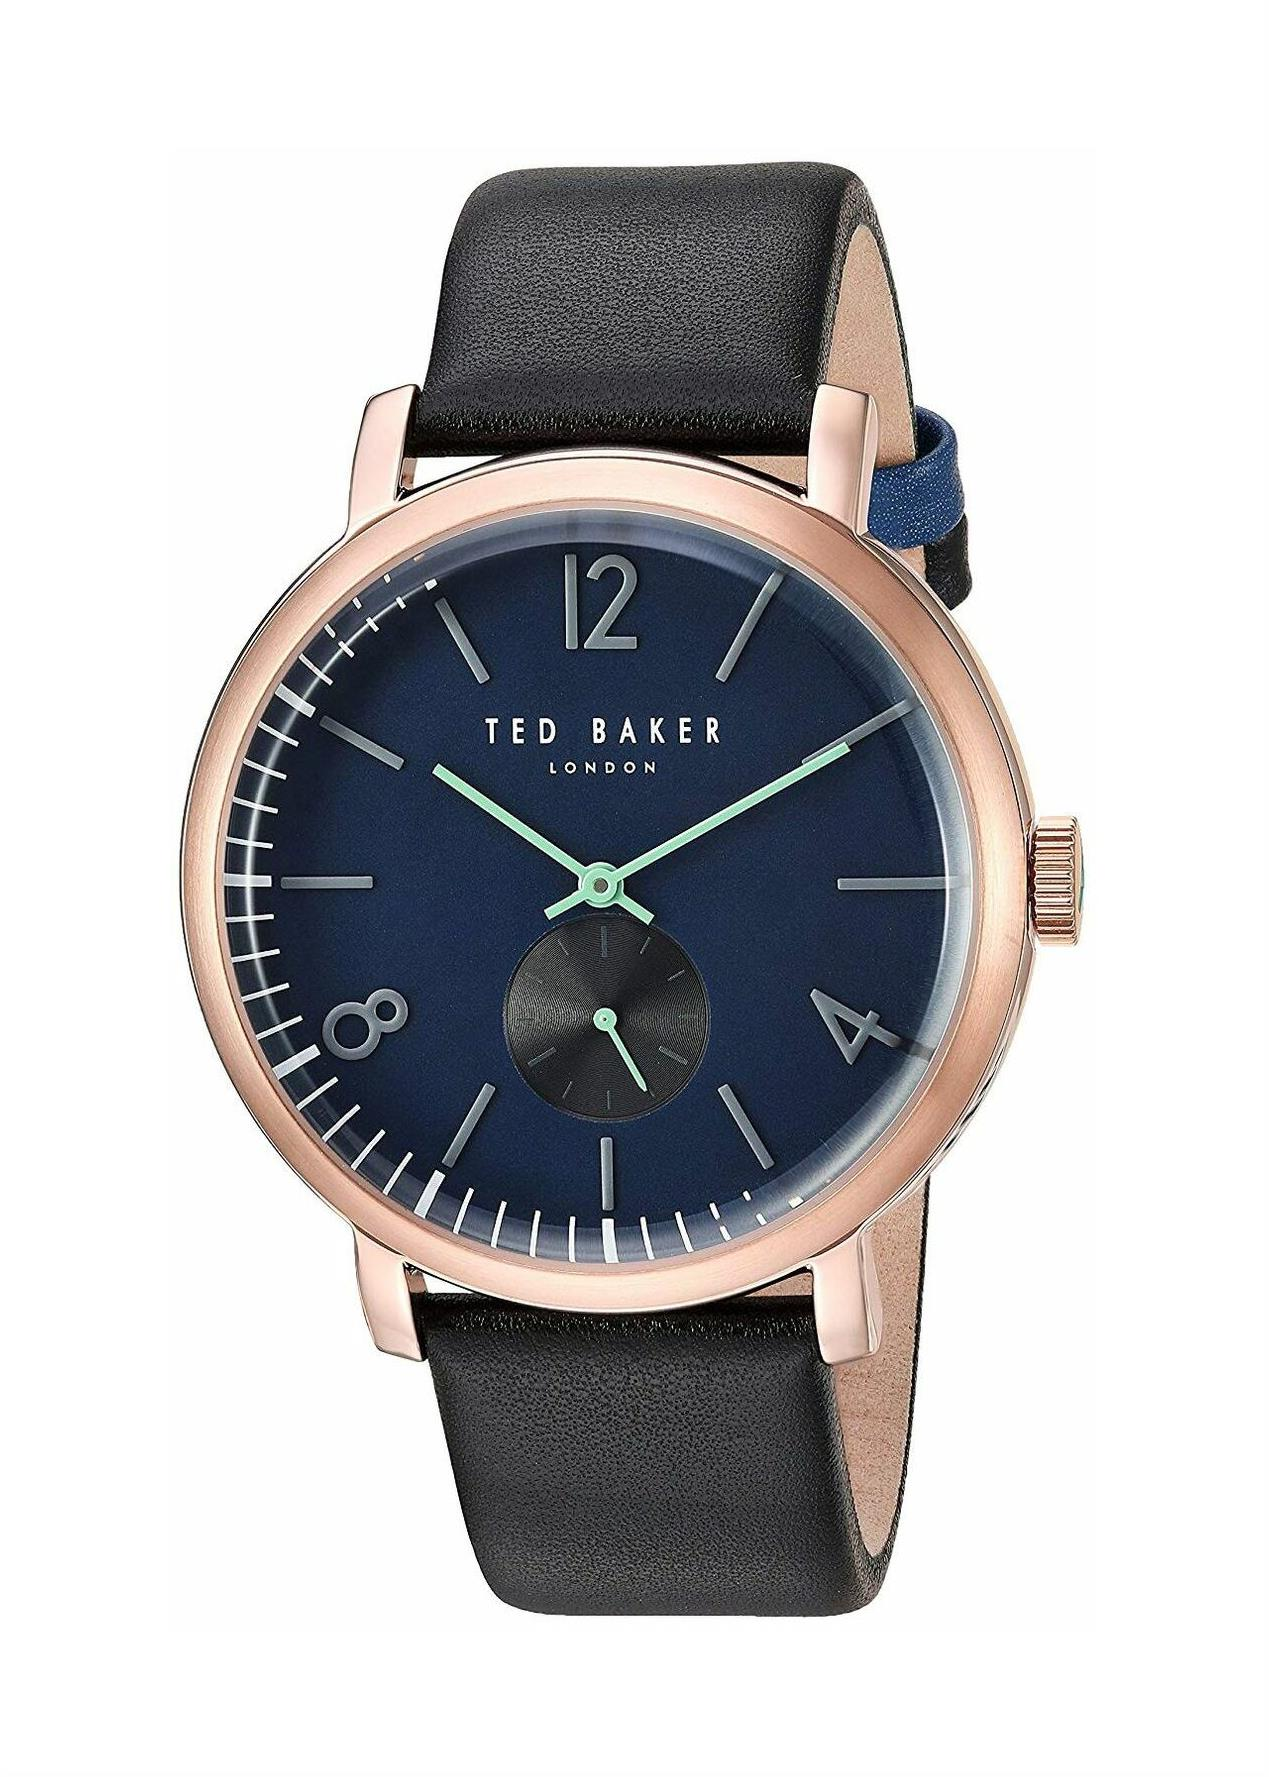 TED BAKER Mens Wrist Watch Model Oliver TE10031515